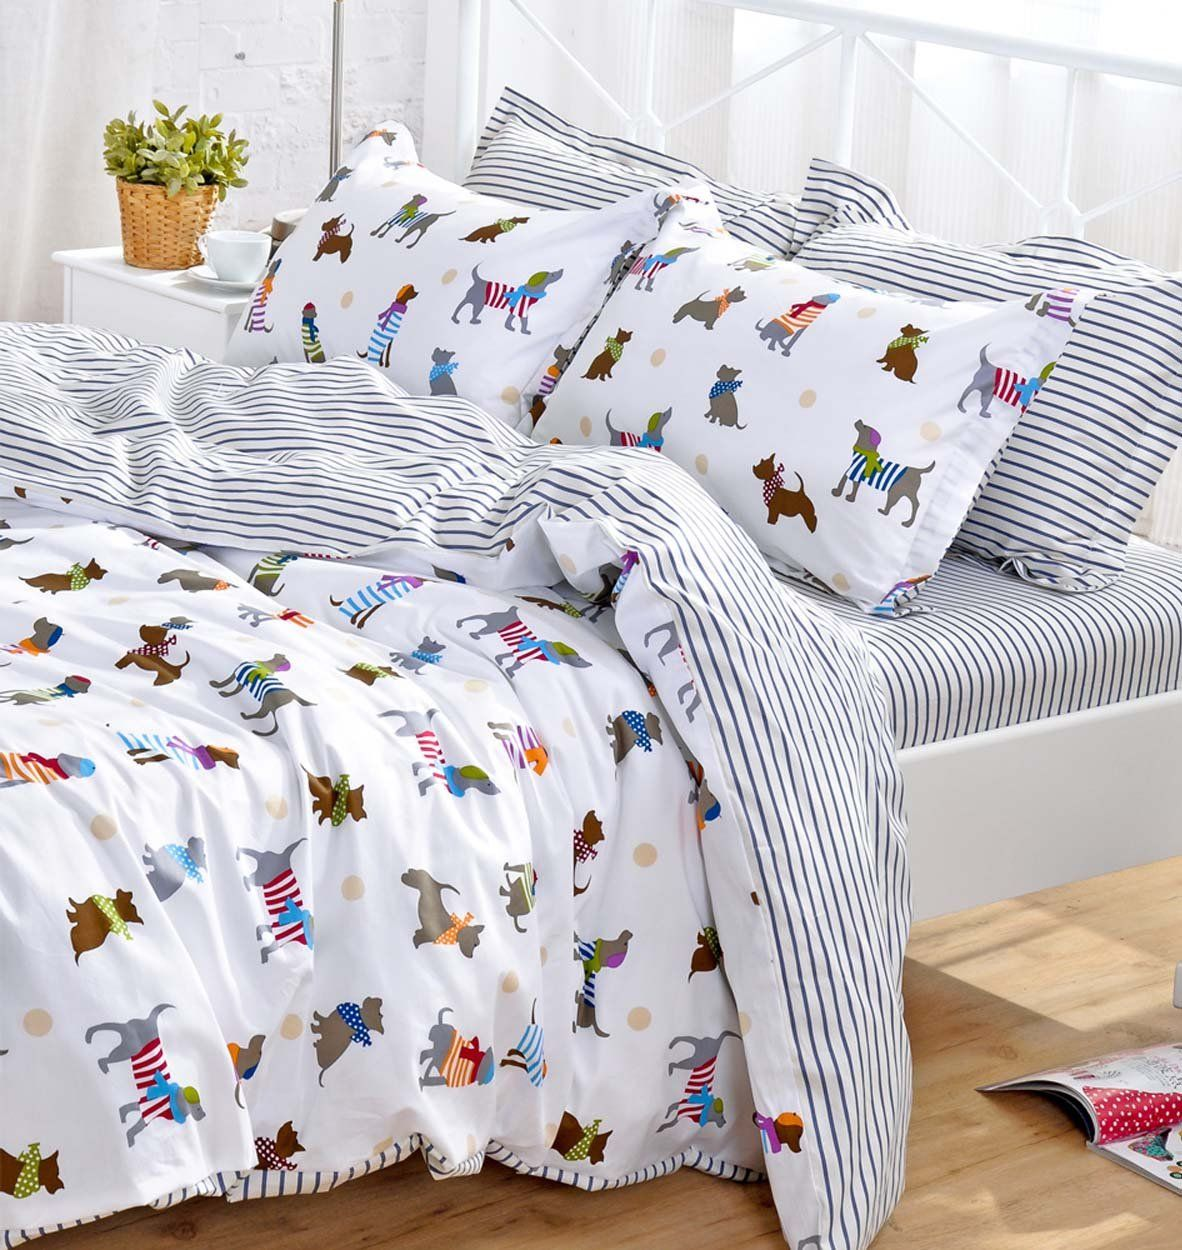 YOYOMALL Cotton Cartoon Dog Bedding Set,Cute Puppy Duvet